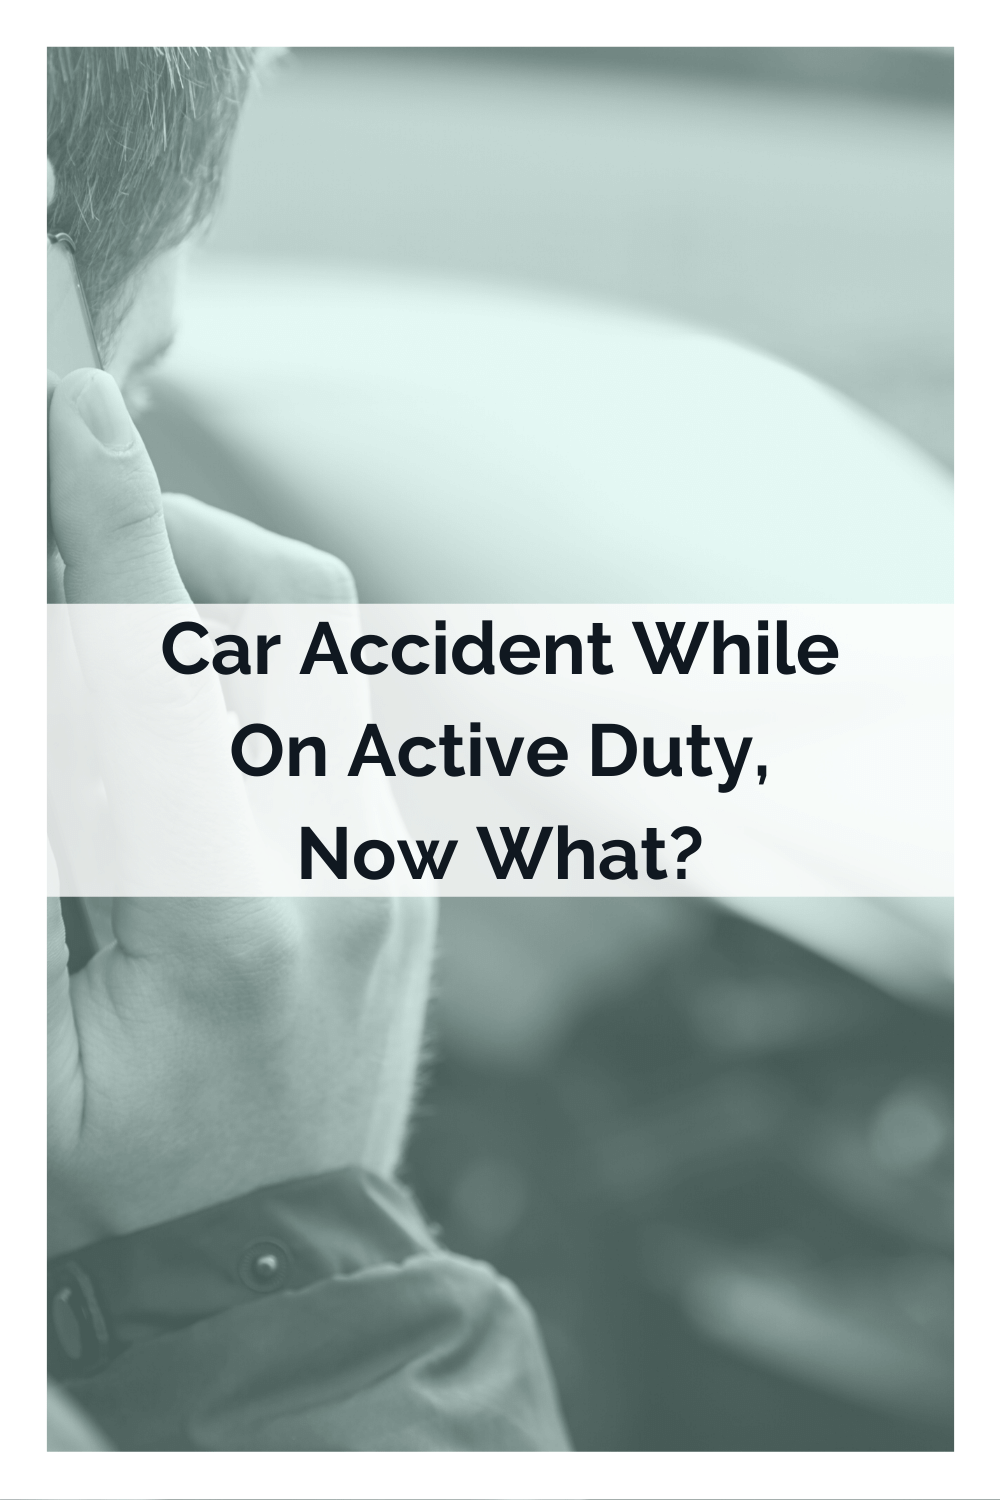 Car Accident While On Active Duty, Now What?